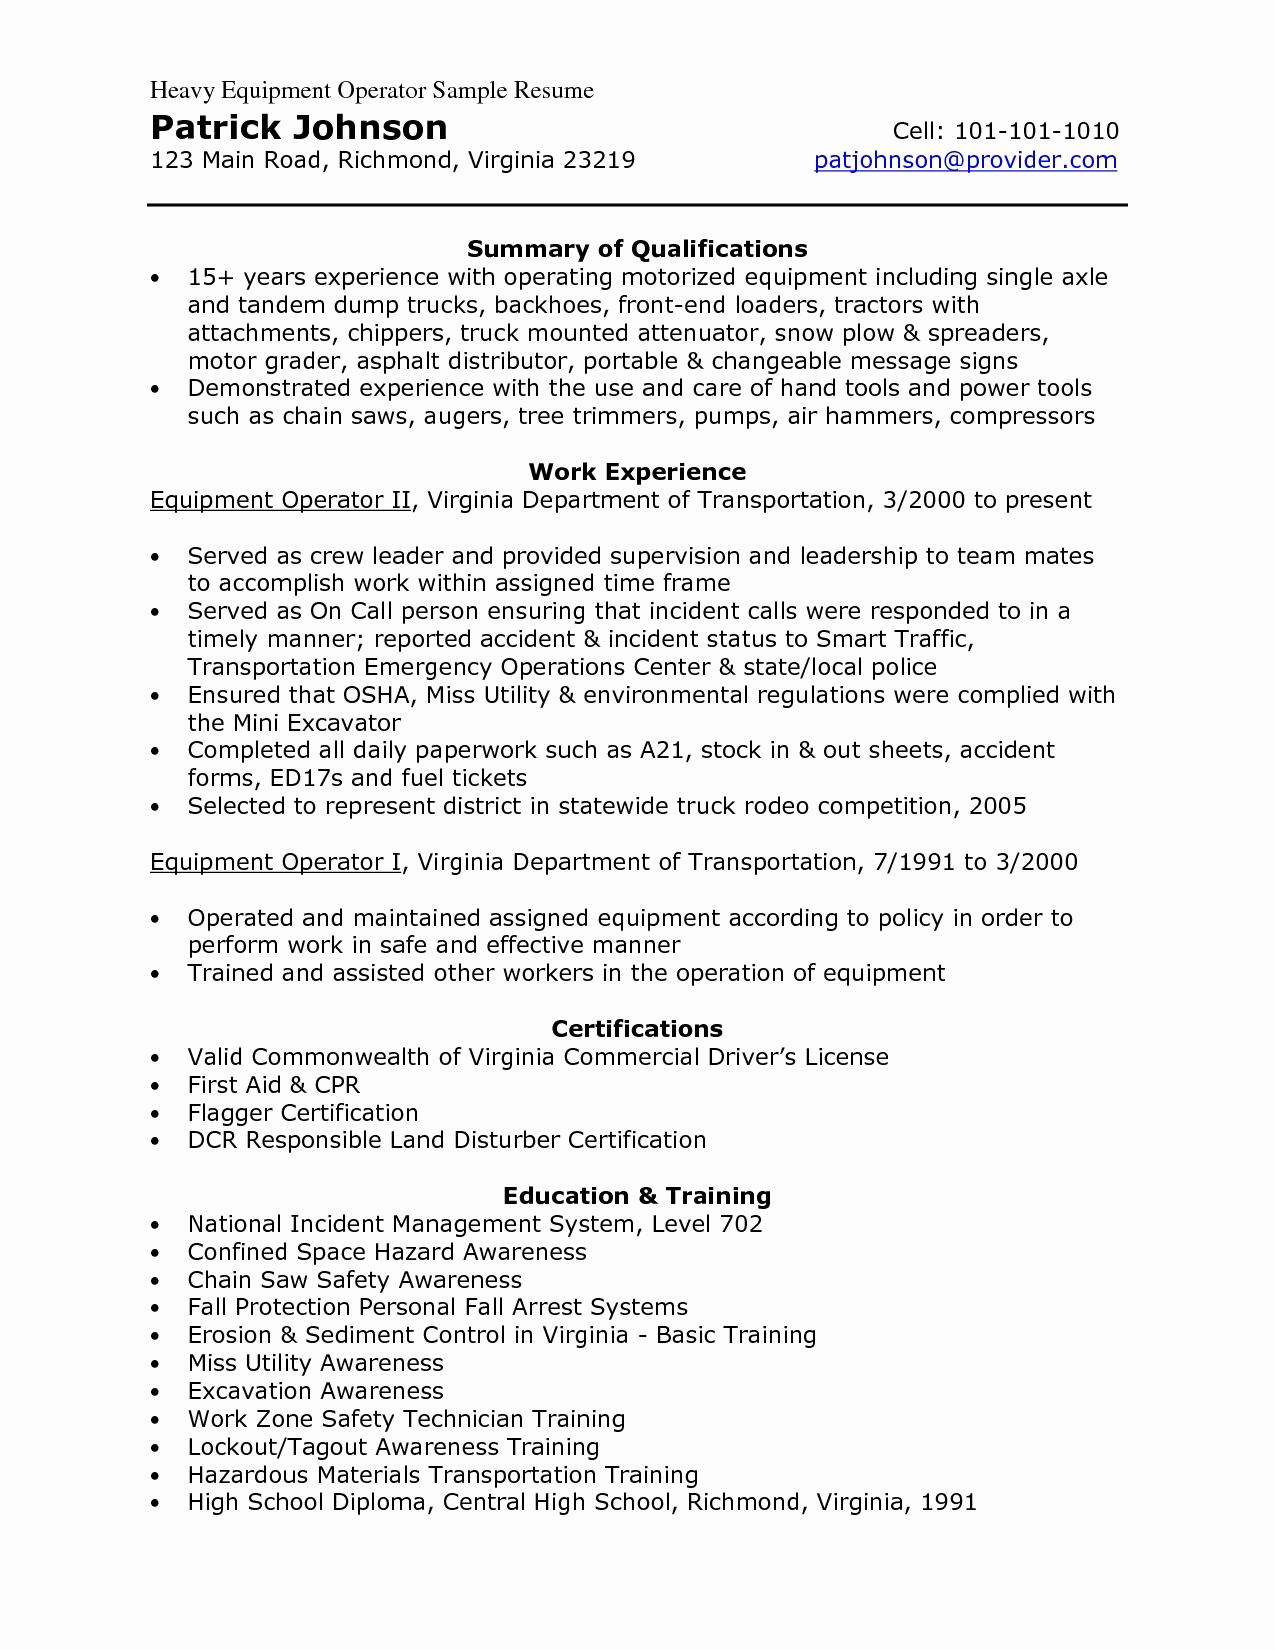 Direct Care Worker Job Duties - Resume Templates for Maintenance Worker Direct Care Staff Duties